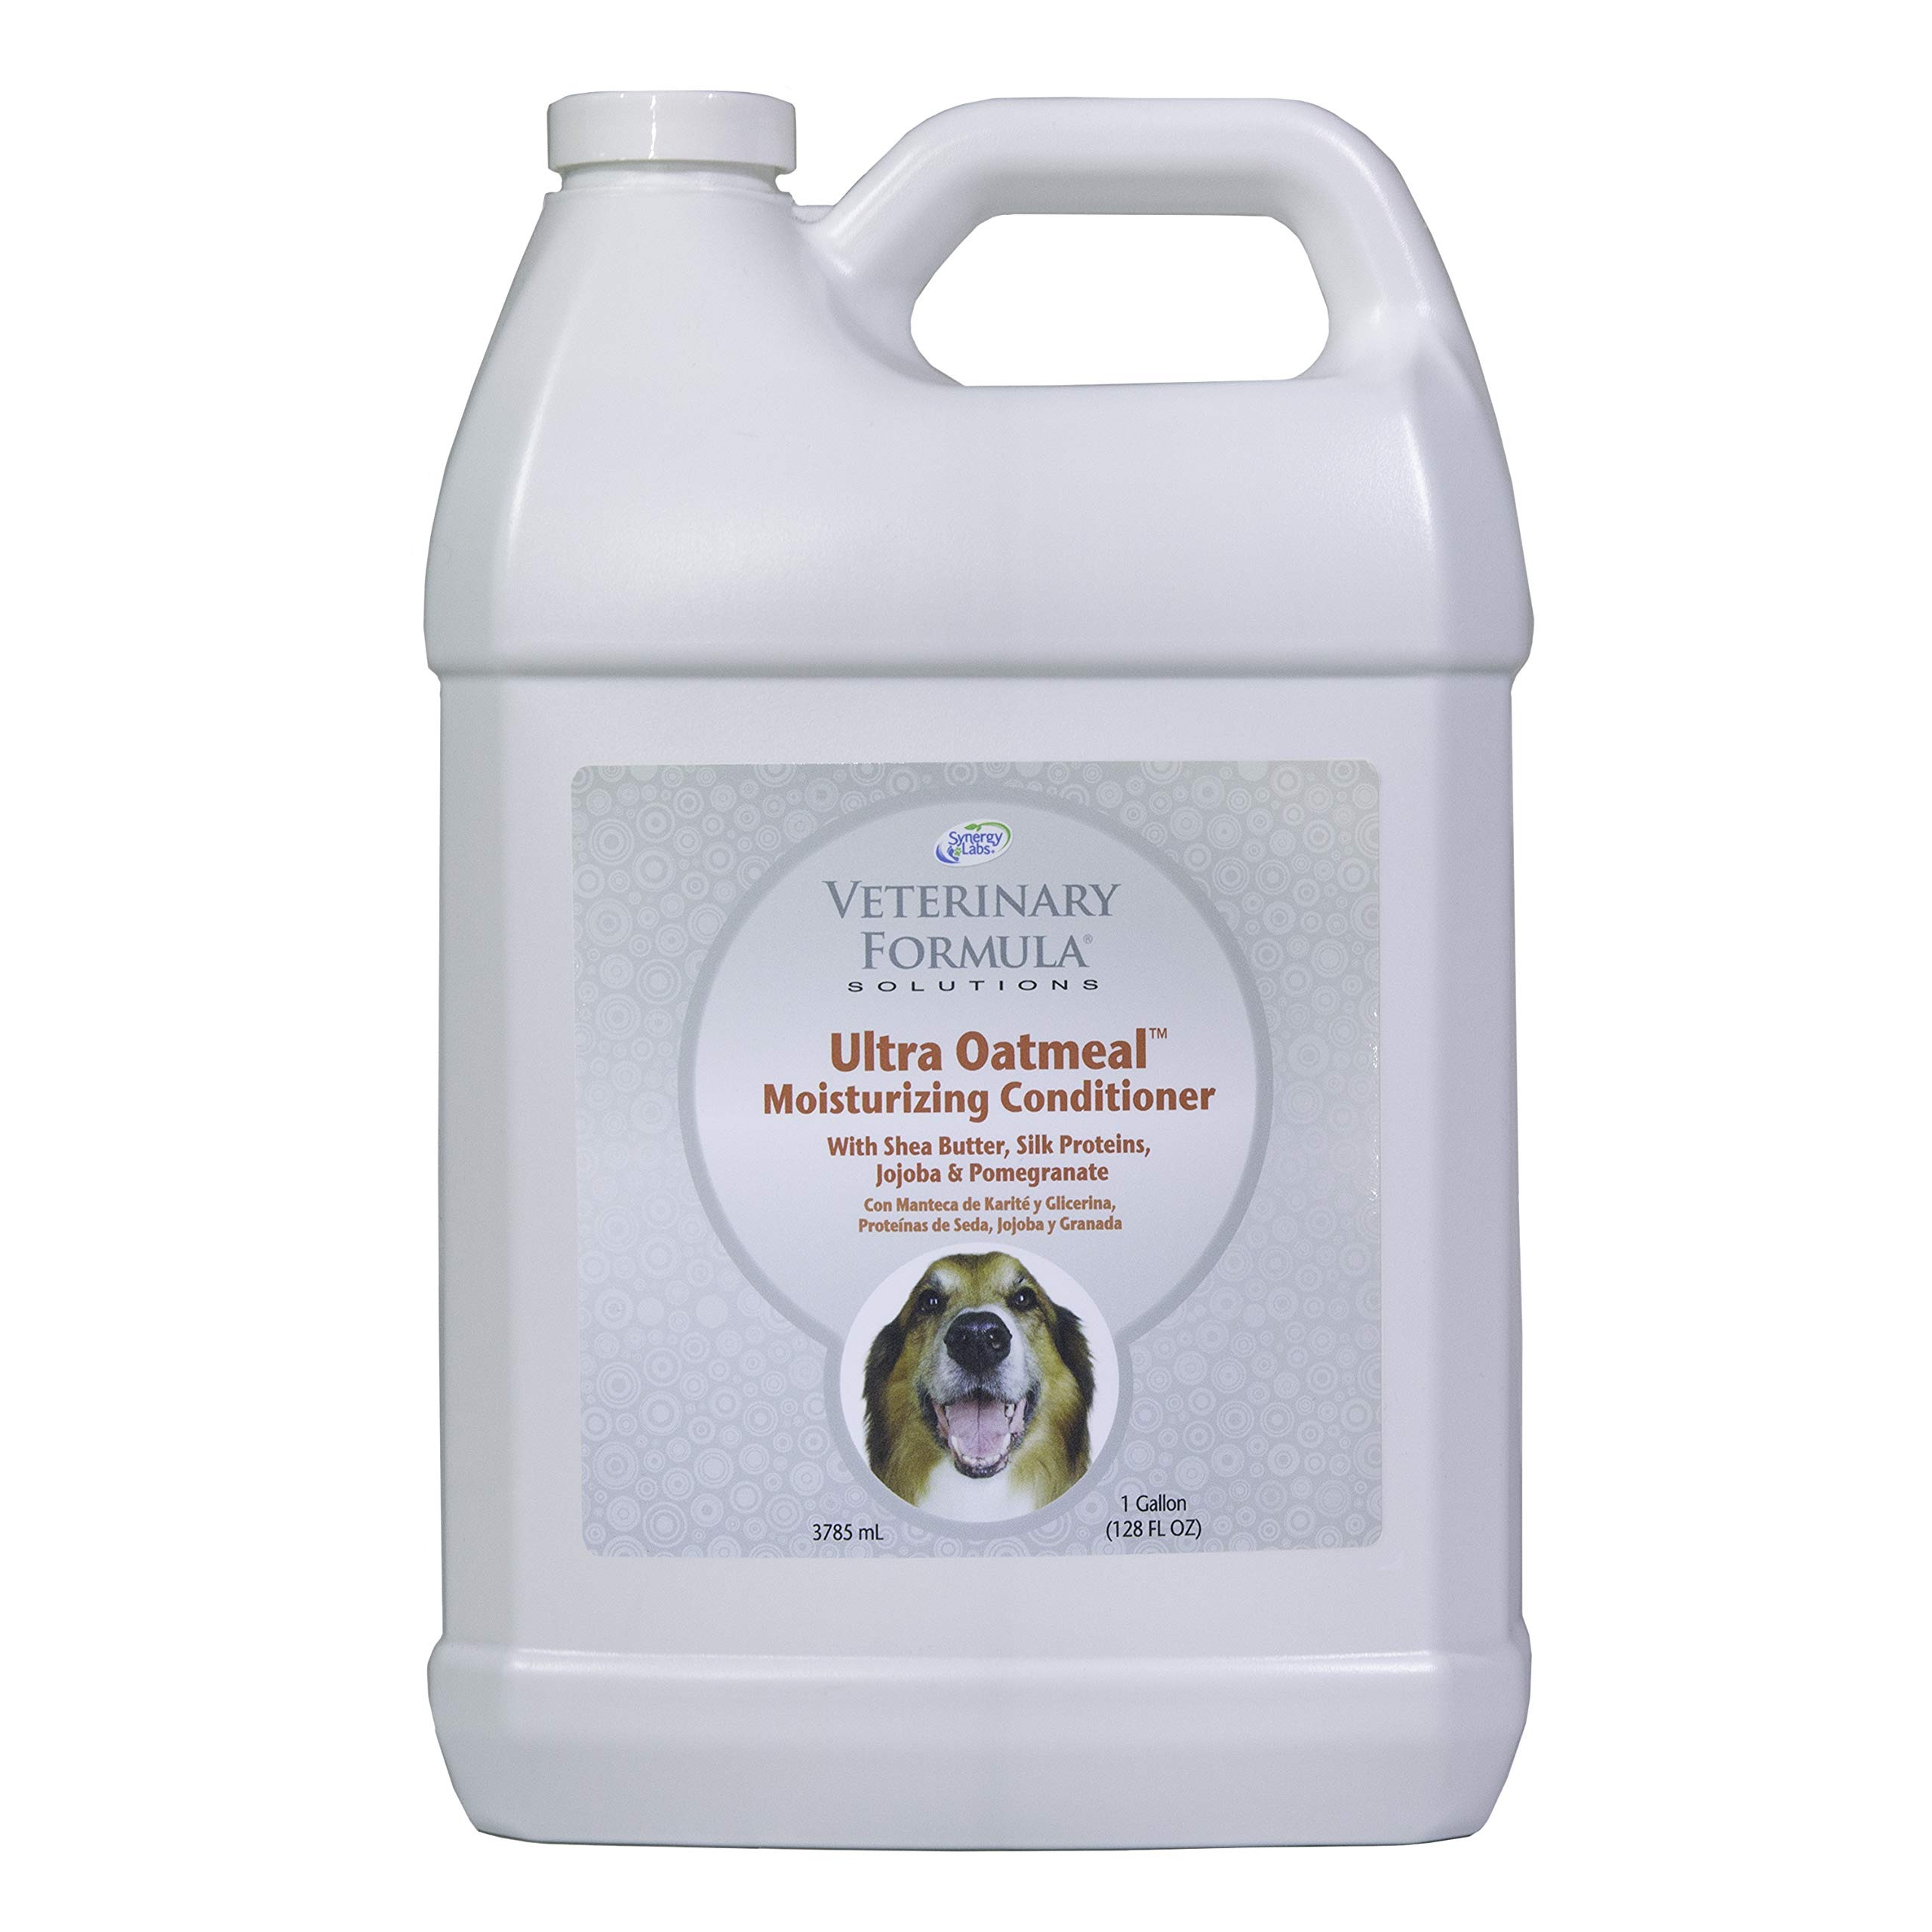 Veterinary Formula Solutions Ultra Oatmeal Moisturizing Conditioner, Soothes Skin Related Issues, Clinically Proven Dog Itch Relief (1 Gallon) by Synergy